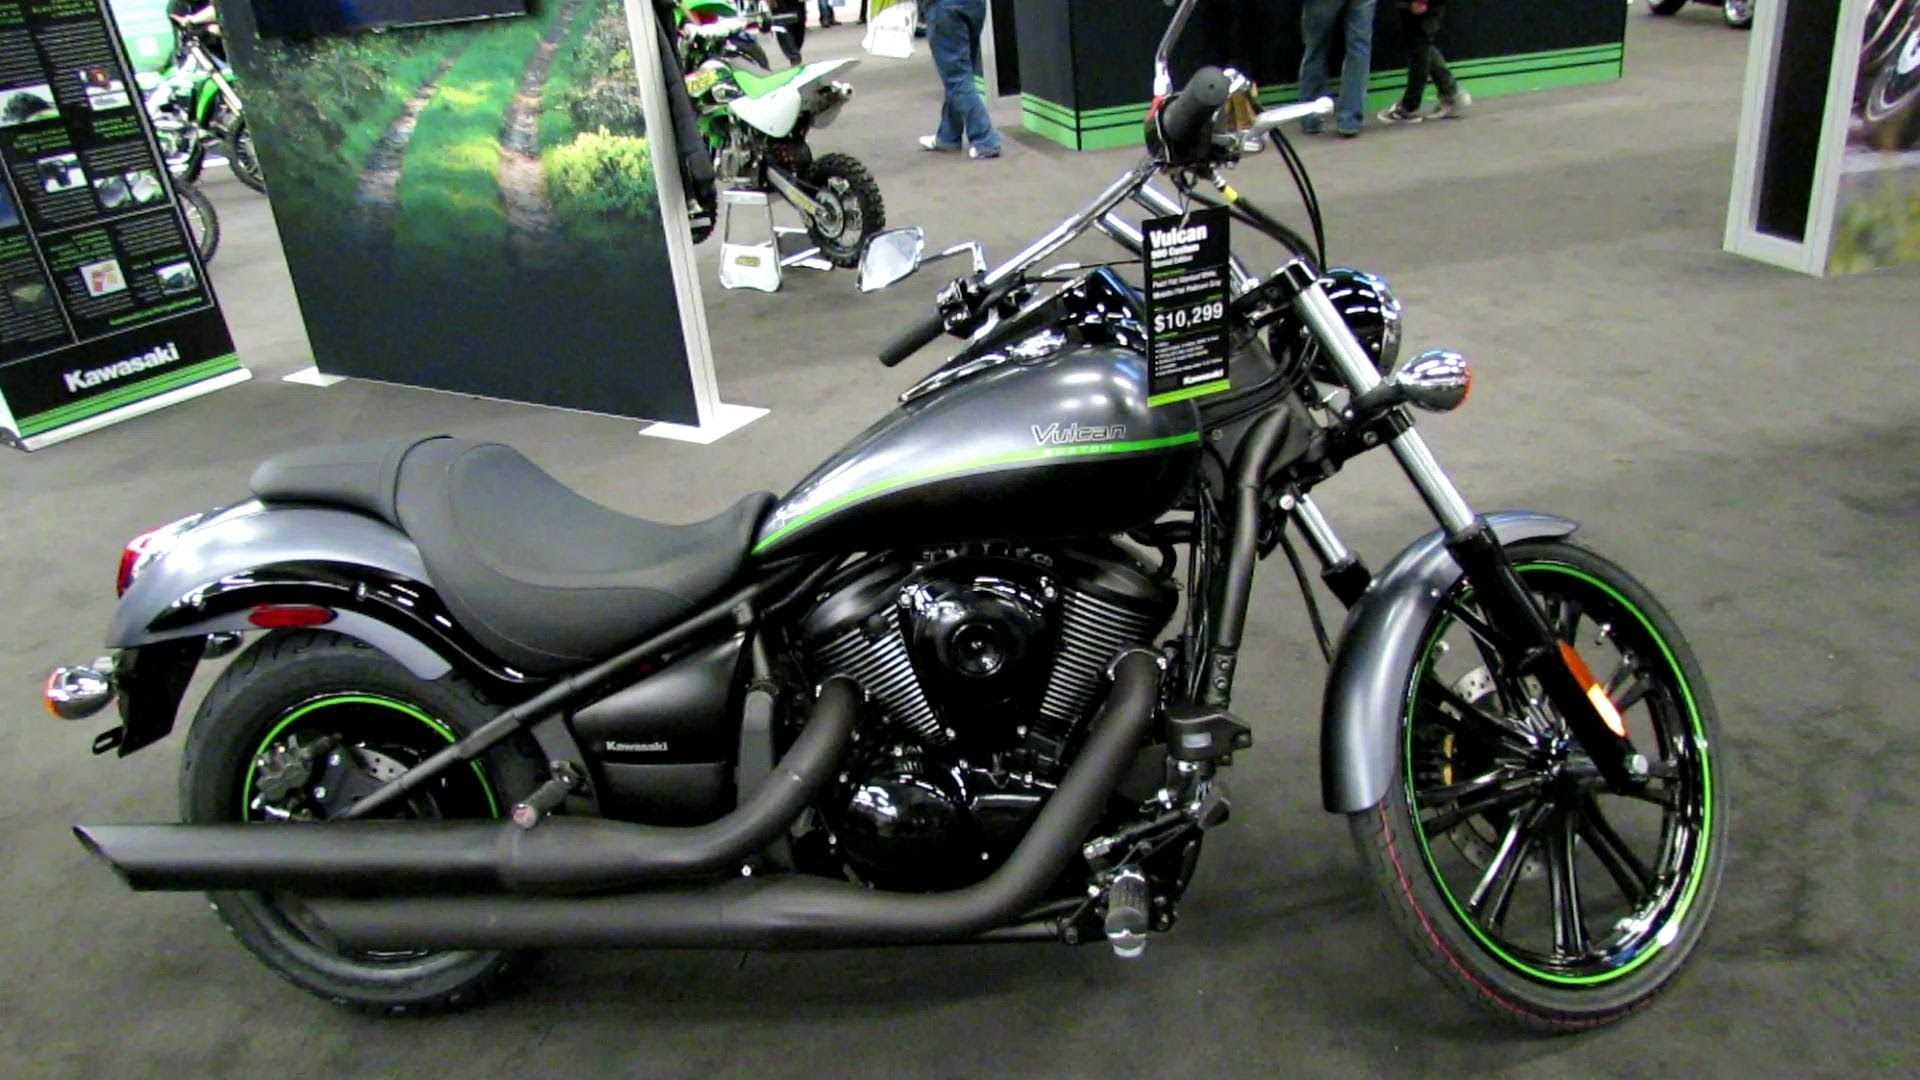 Kawasaki Vncustom For Sale